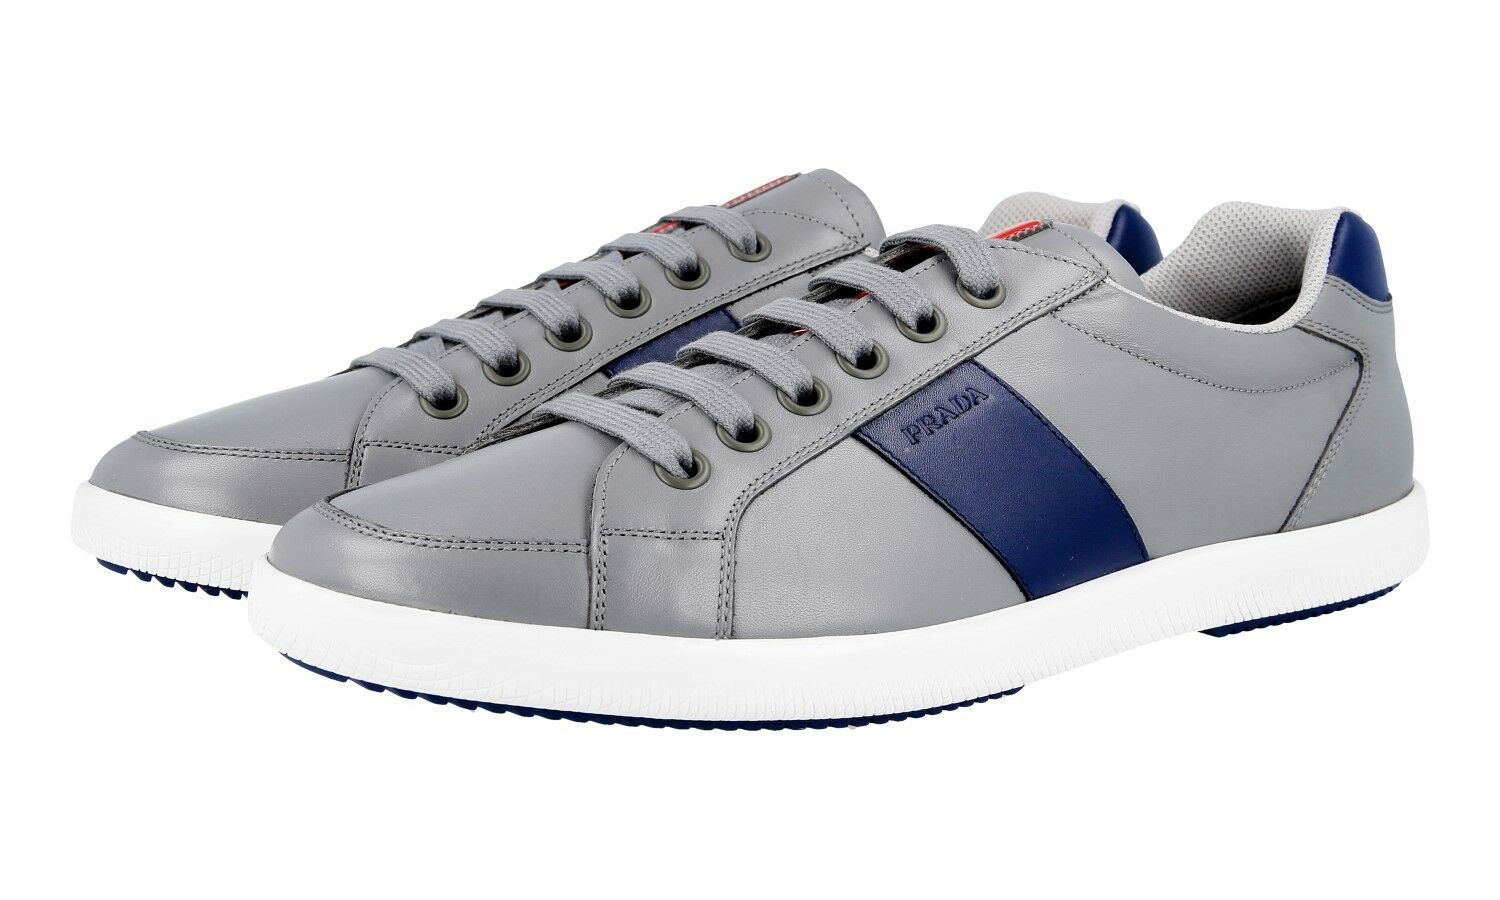 AUTHENTIC LUXURY PRADA SNEAKERS SHOES 4E2845 GREY blueE NEW 9 43 43,5